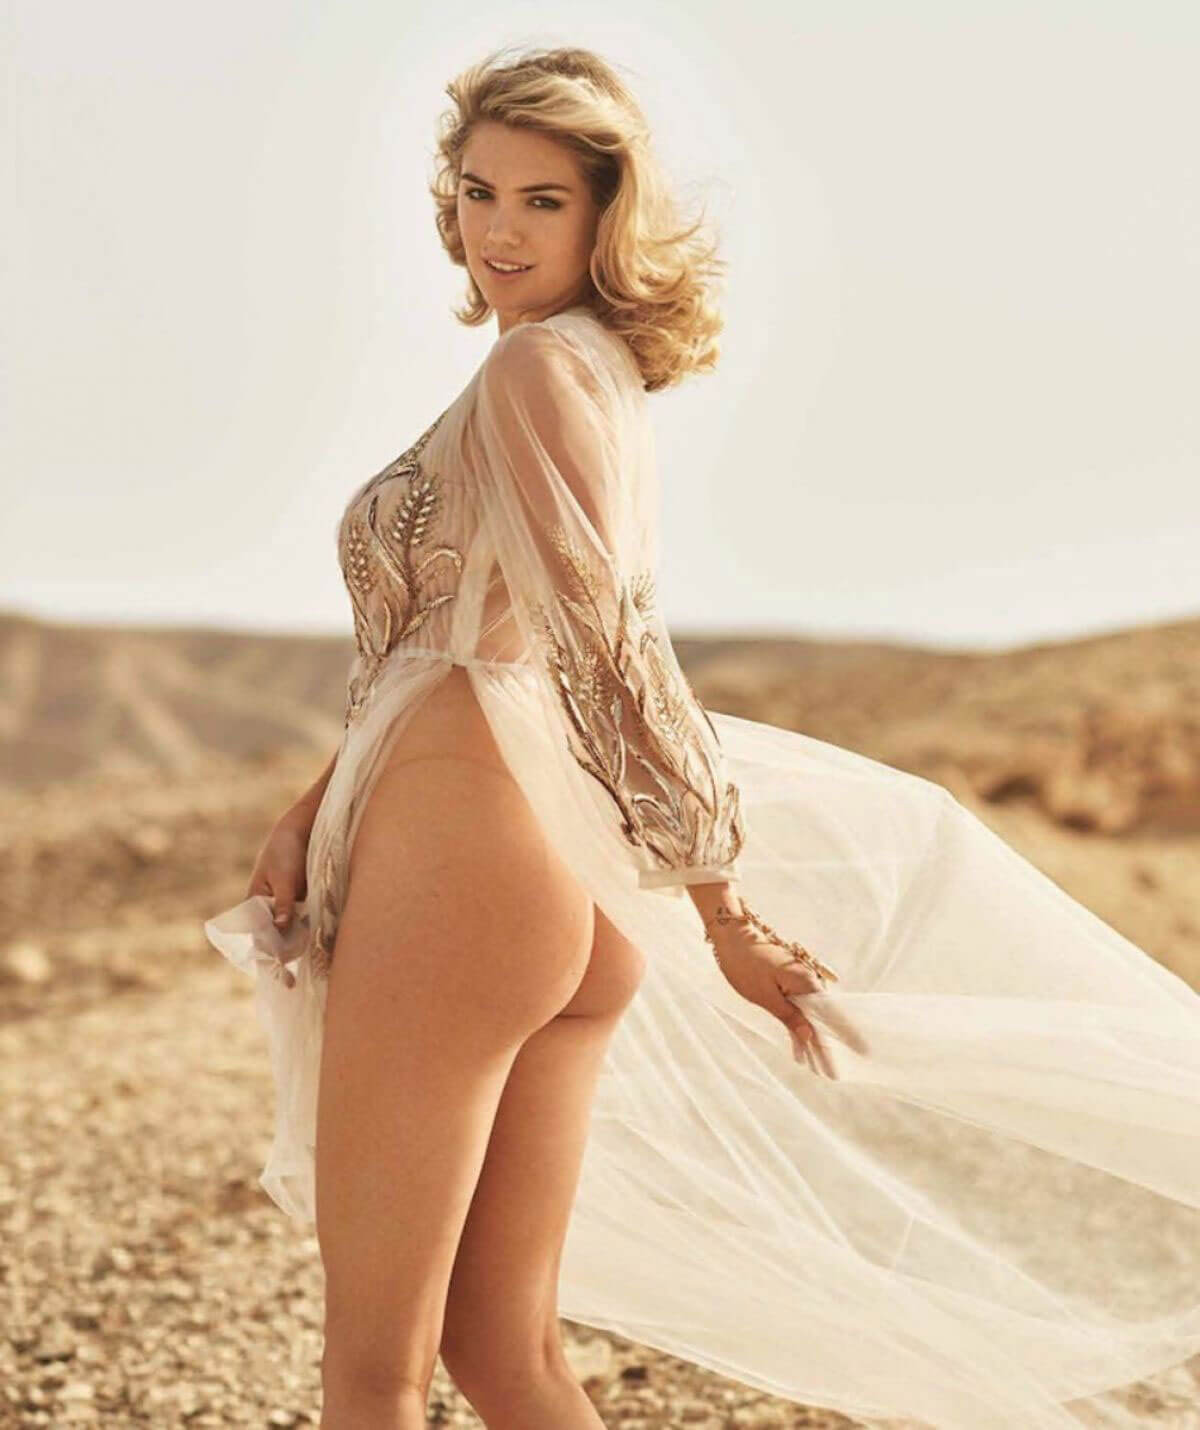 Kate Upton in Maxim Magazine, July/August 2018 Issue 5